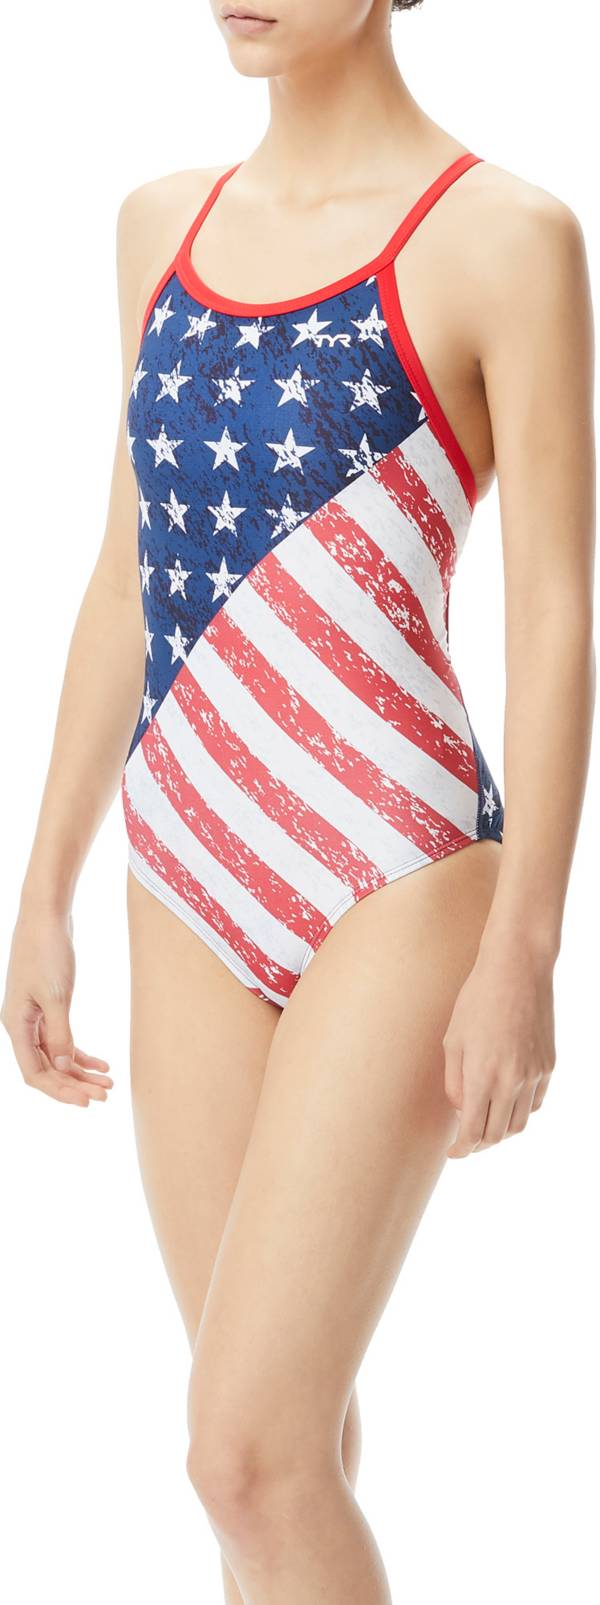 TYR Women's Star Spangled Diamondfit One Piece Swimsuit product image